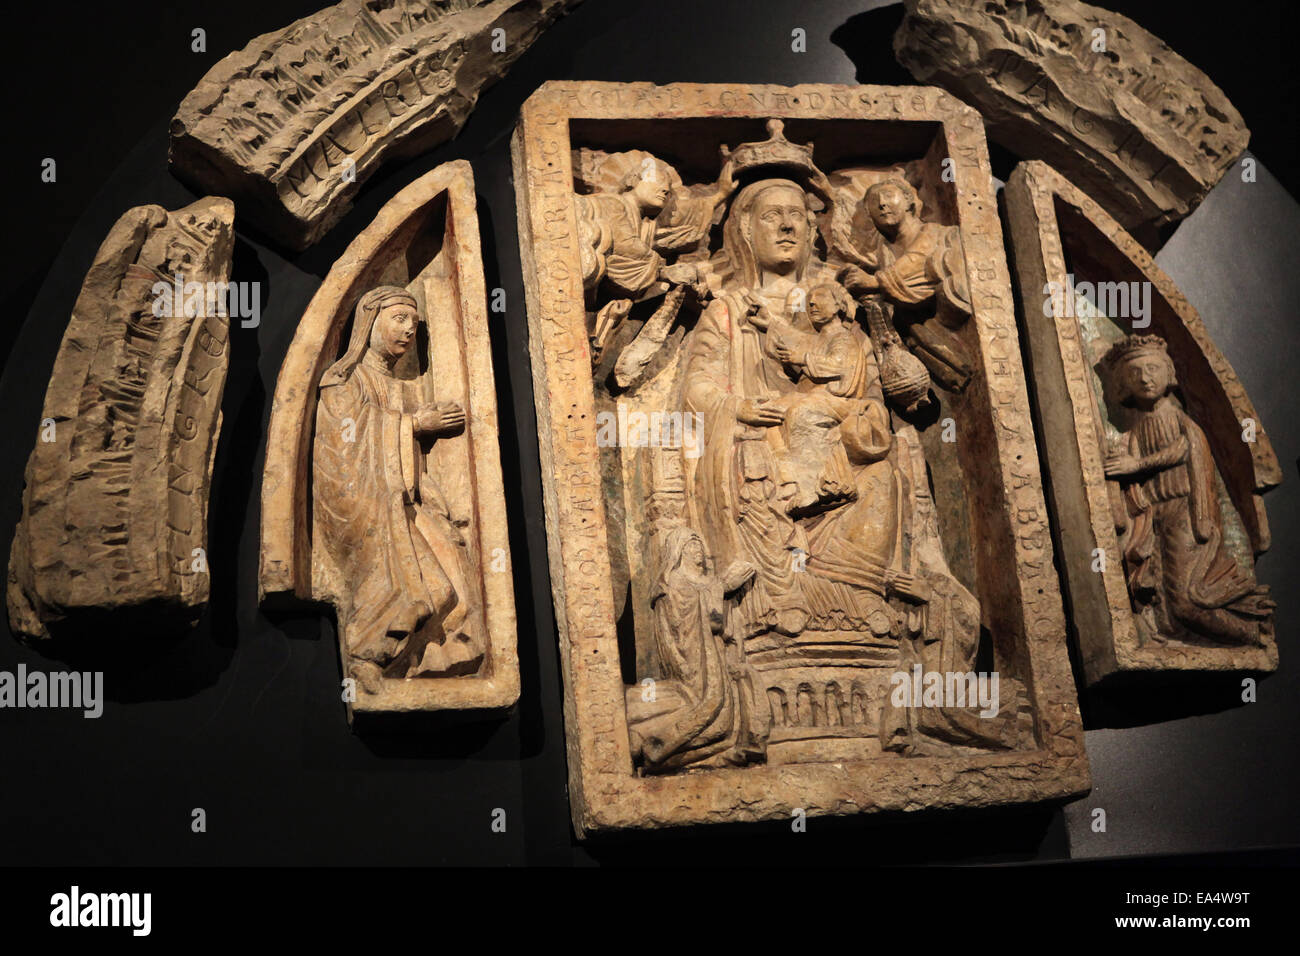 Romanesque tympanum from St George Basilica at Prague Castle in Prague, Czech Republic. - Stock Image